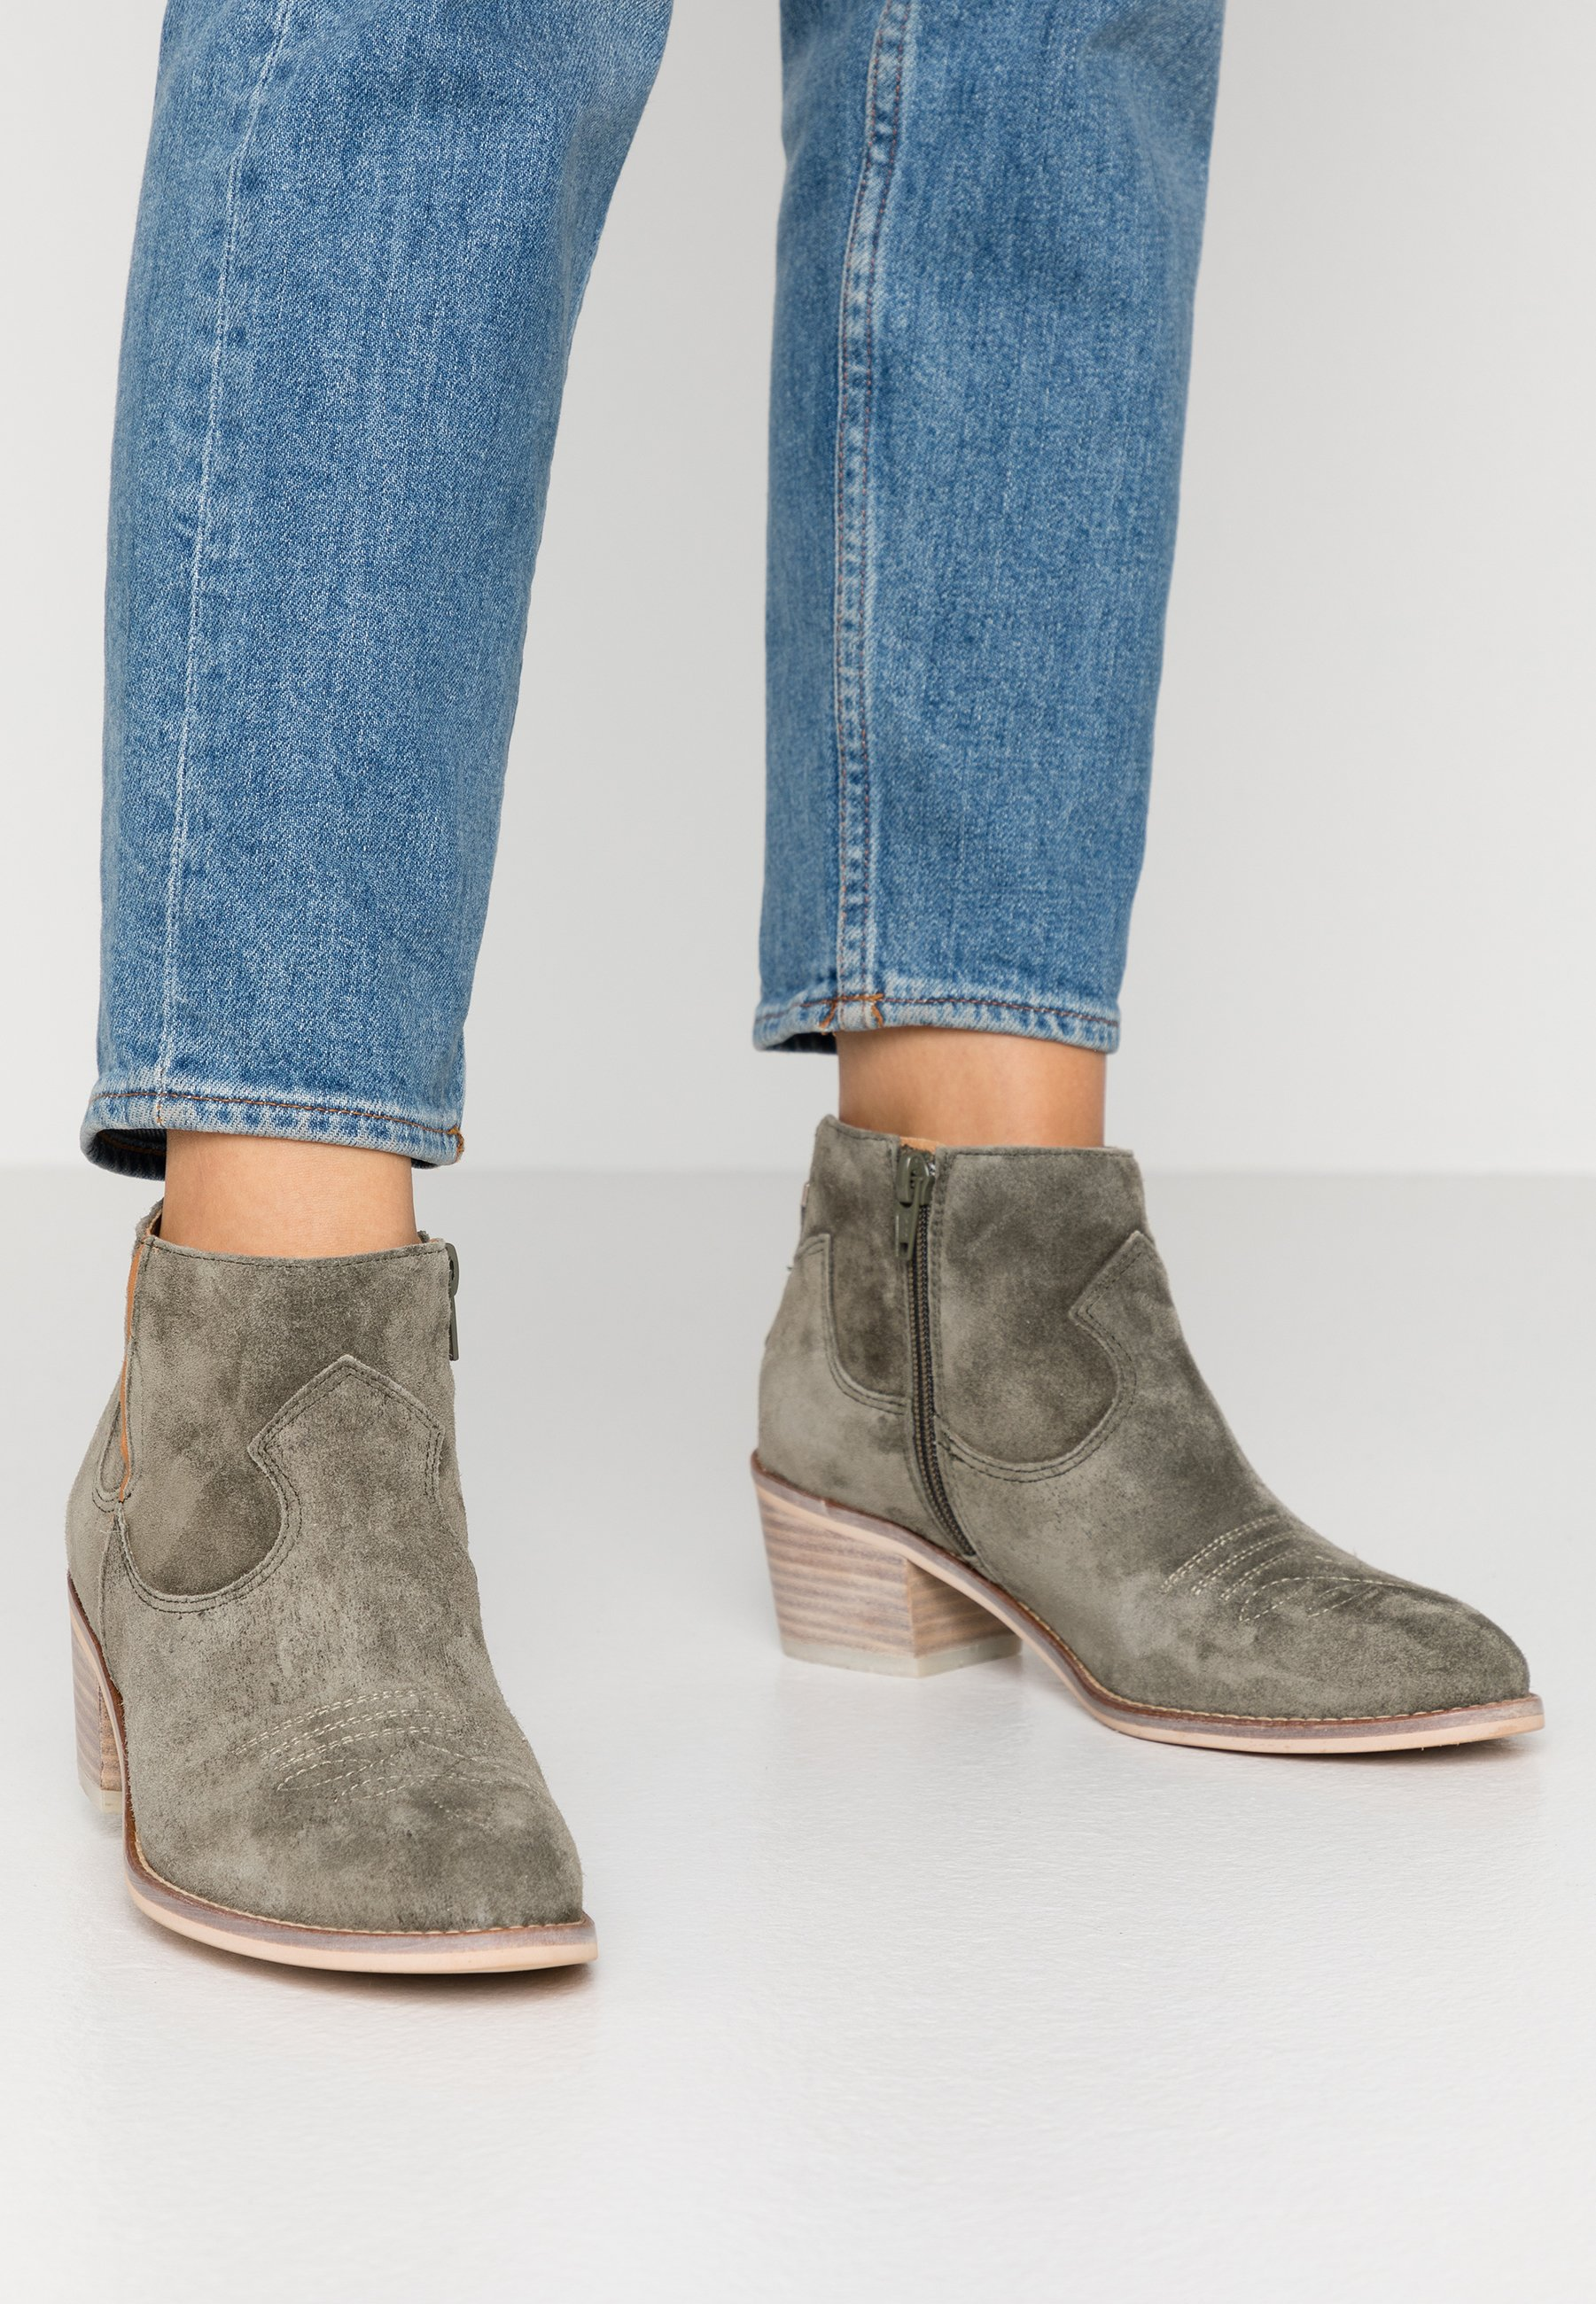 NELLY Ankelboots militare